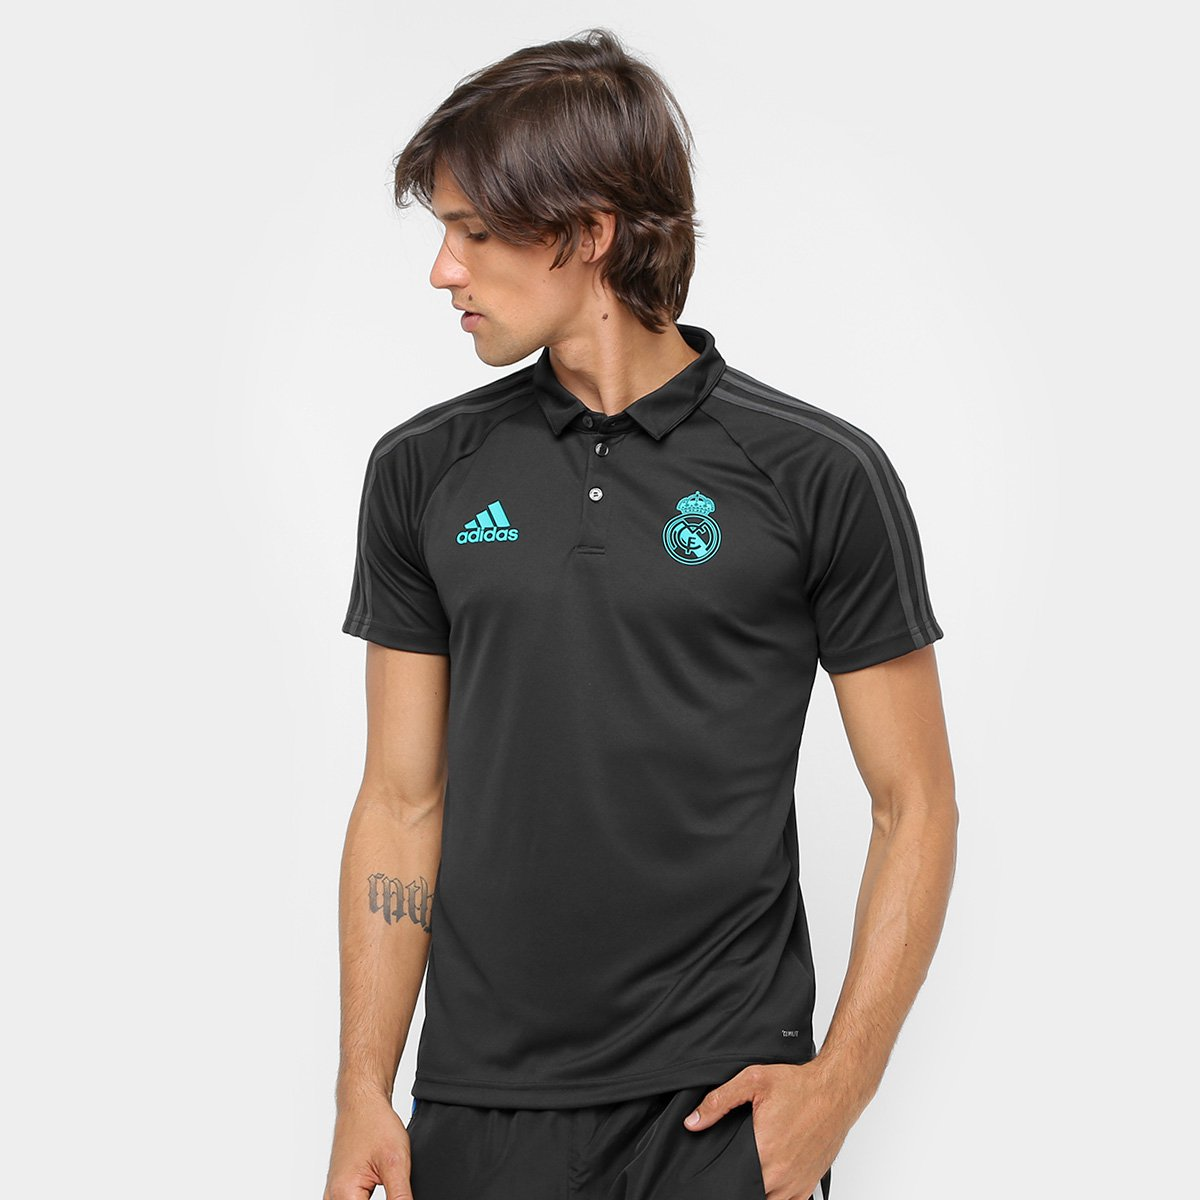 tornillo ensalada Completo  Camisa Polo Adidas Real Madrid Viagem | Allianz Parque Shop